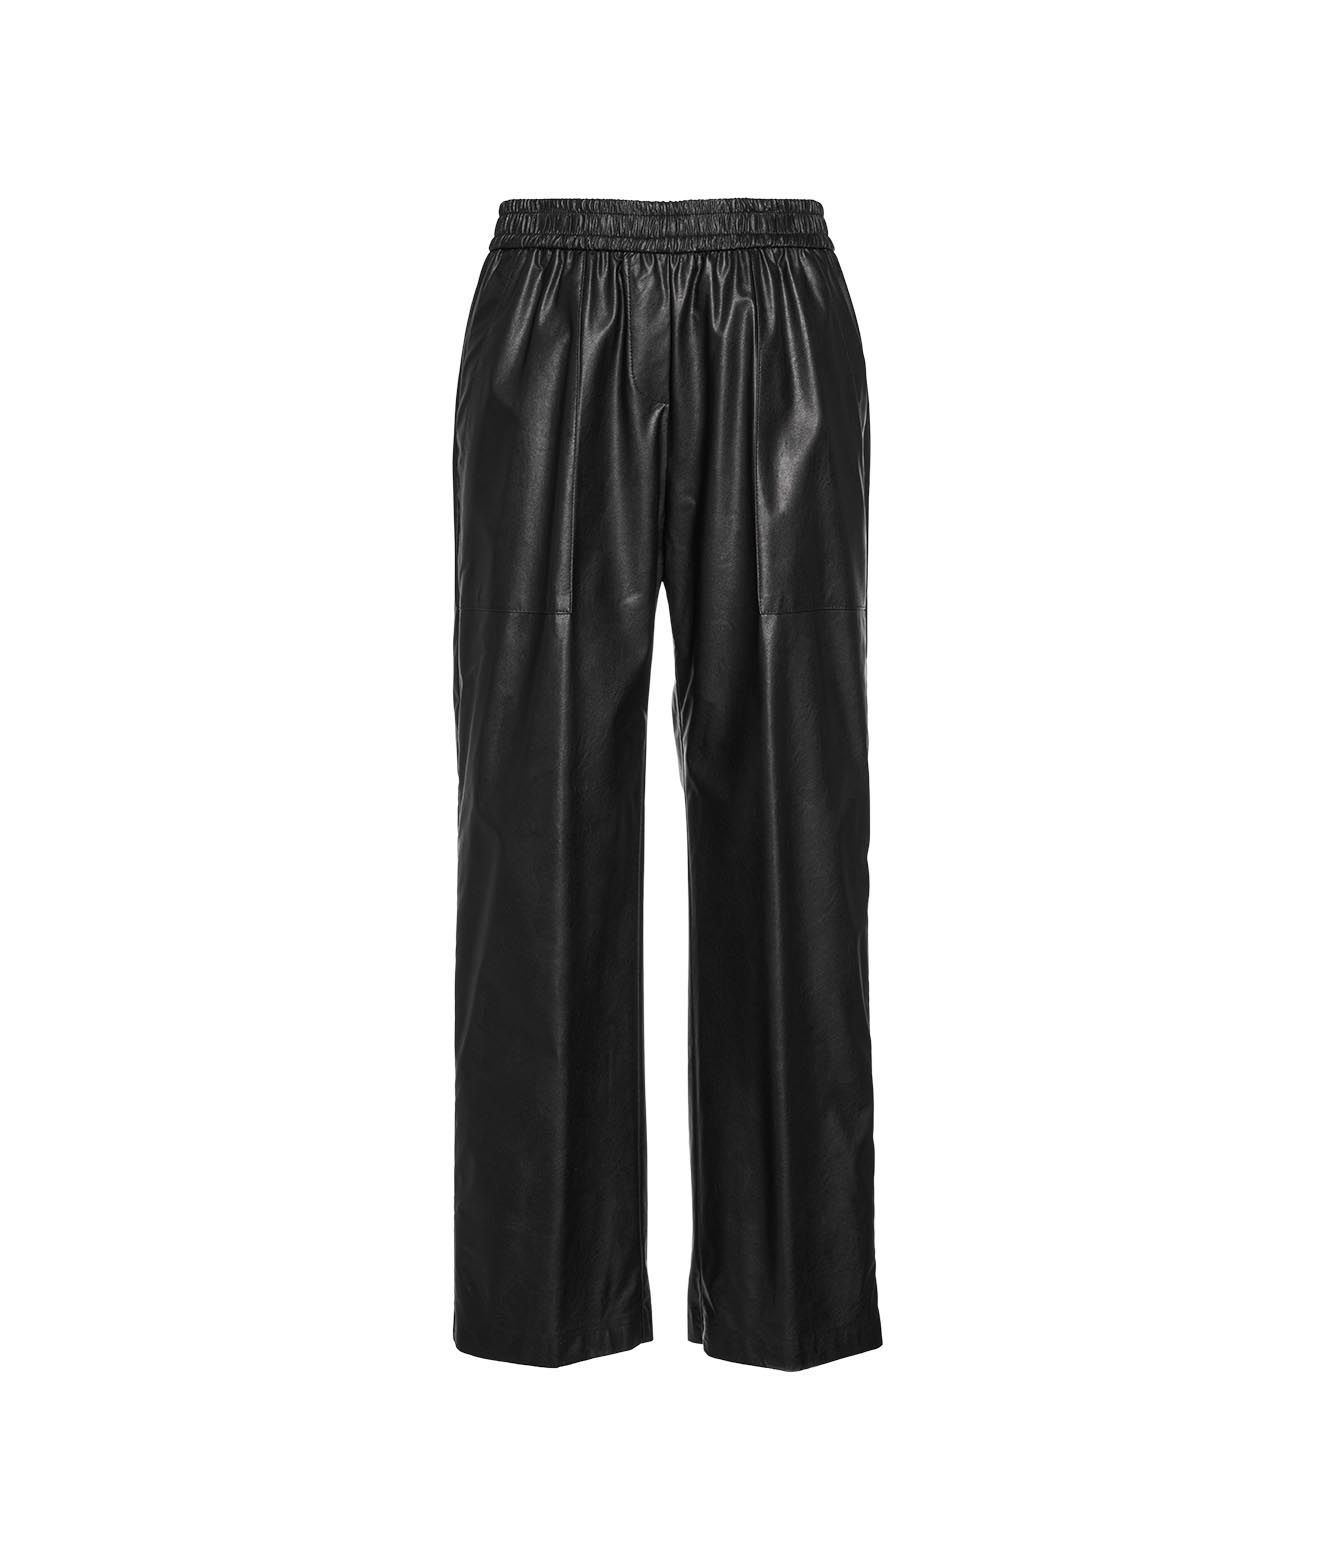 Nude PANTS IN ECO LEATHER